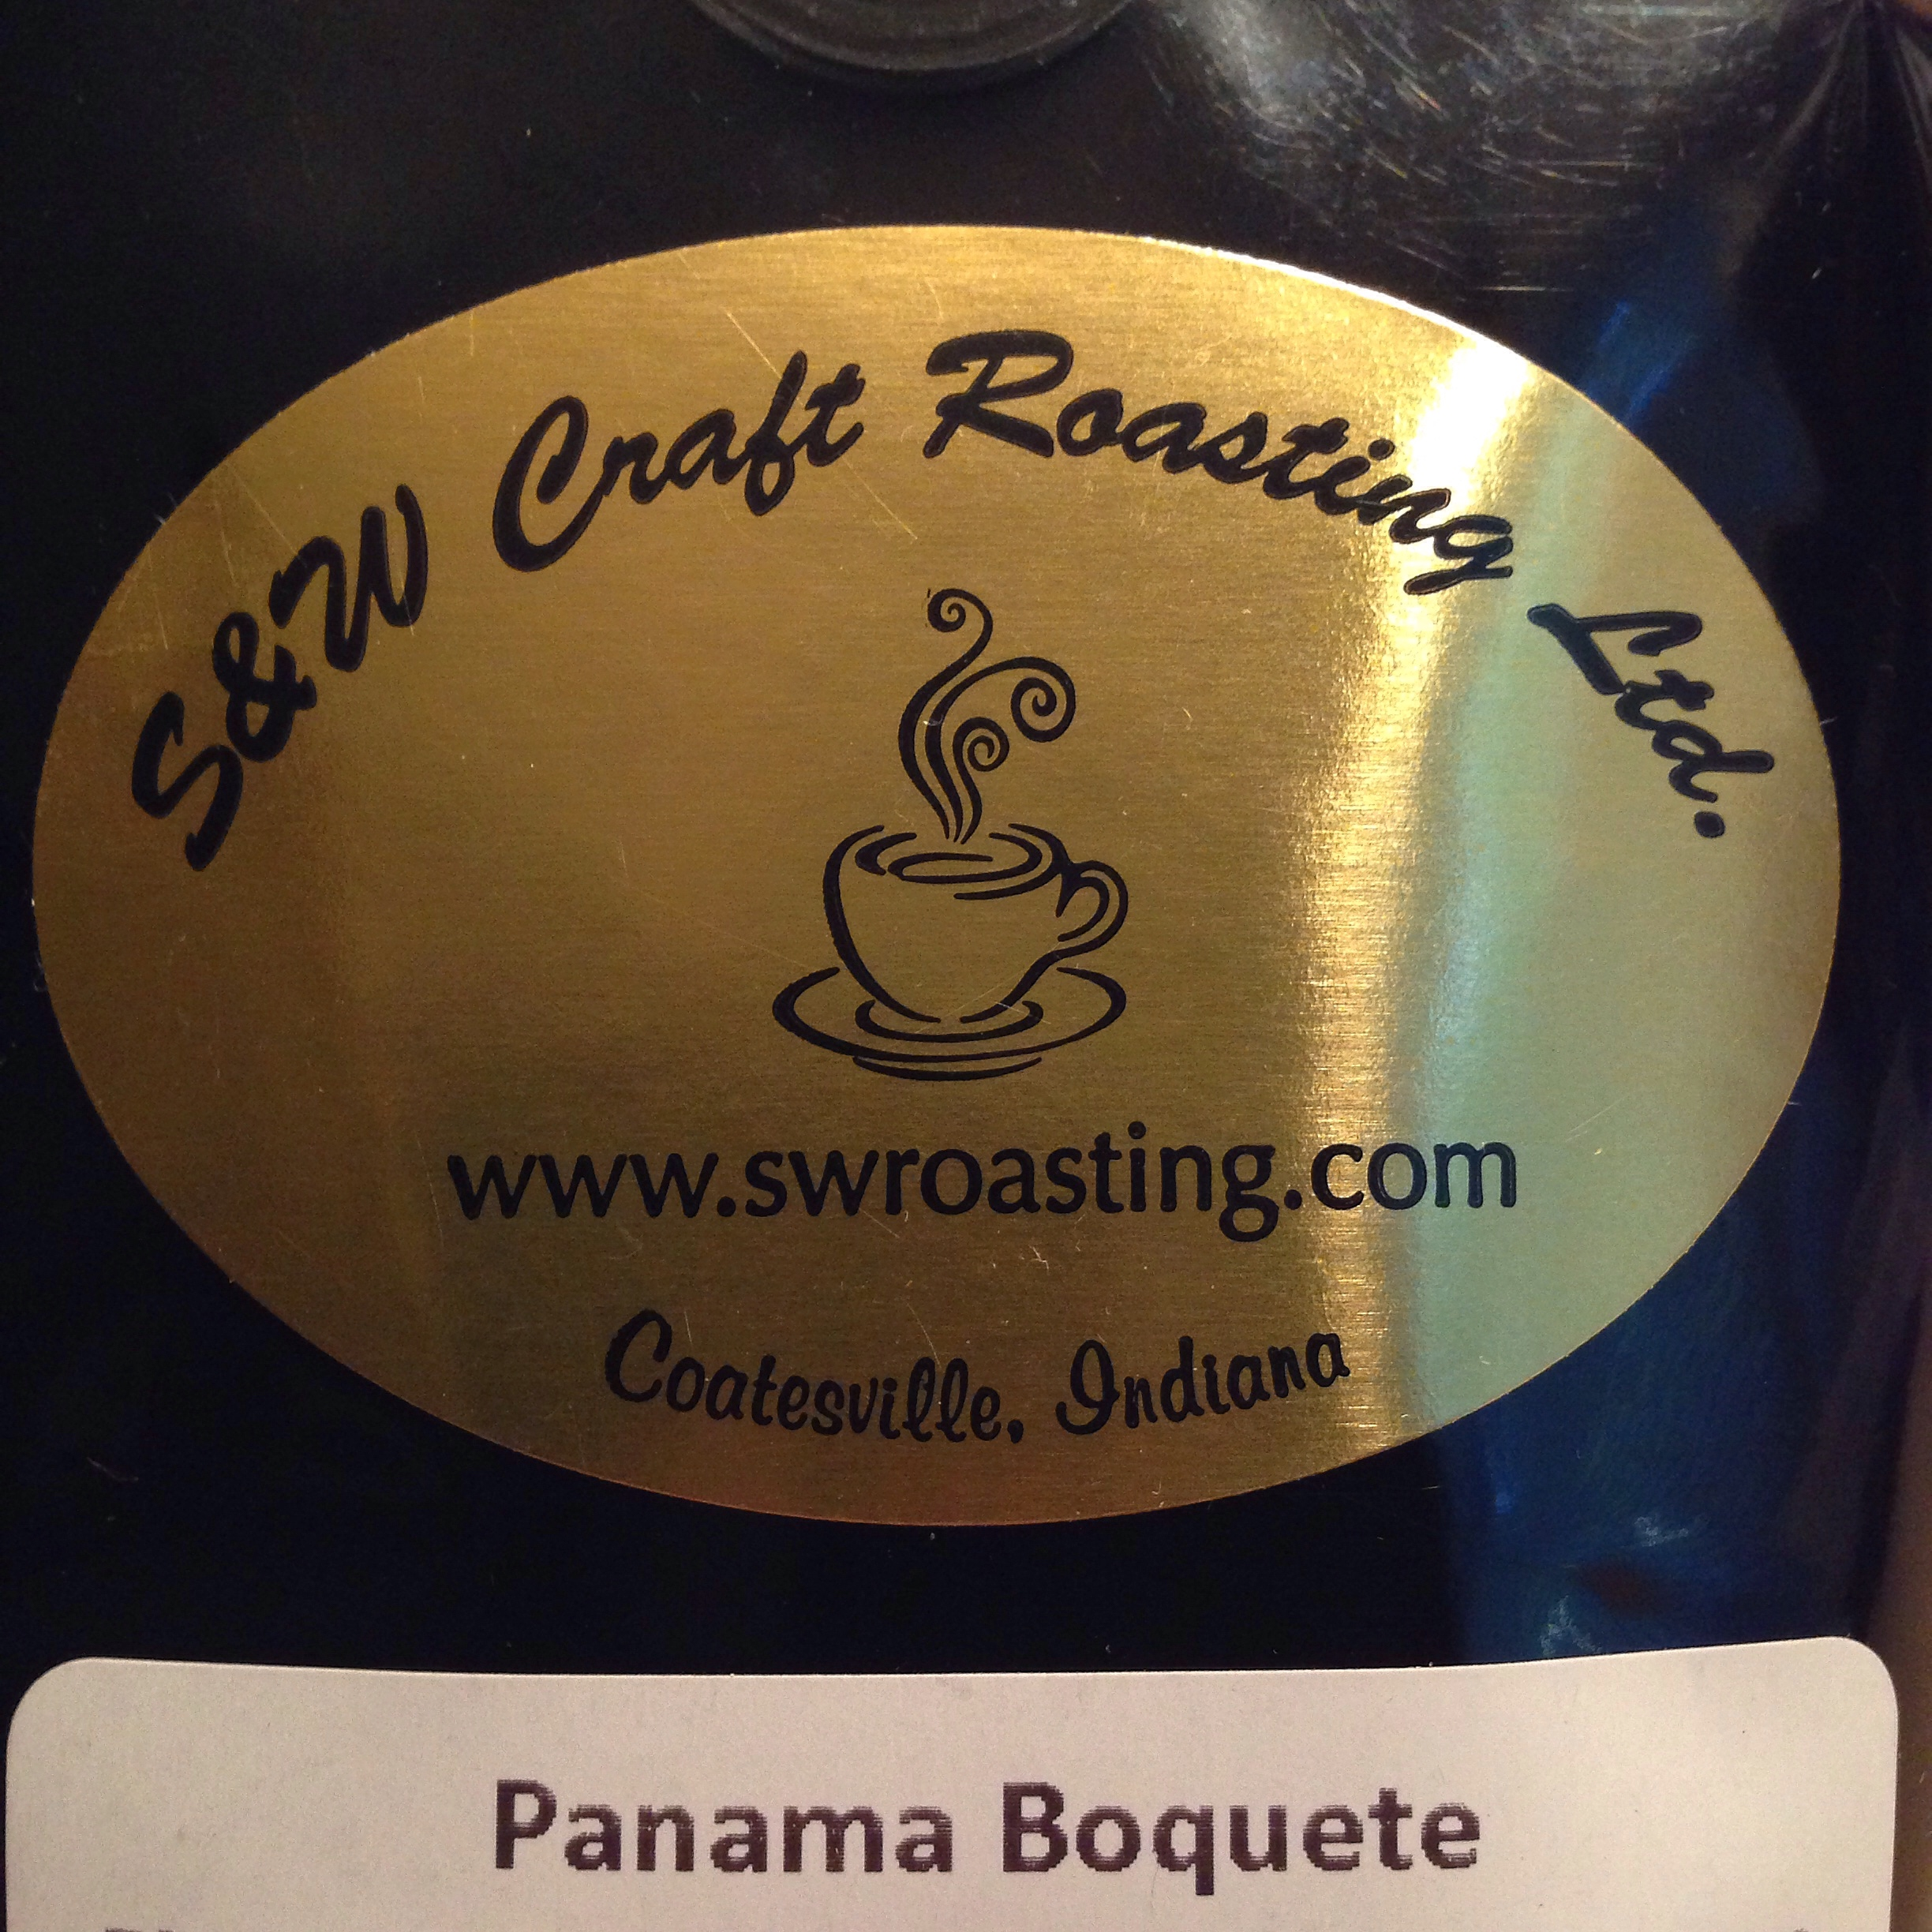 S&W Craft Roasting Panama Boquete Finca Lerida